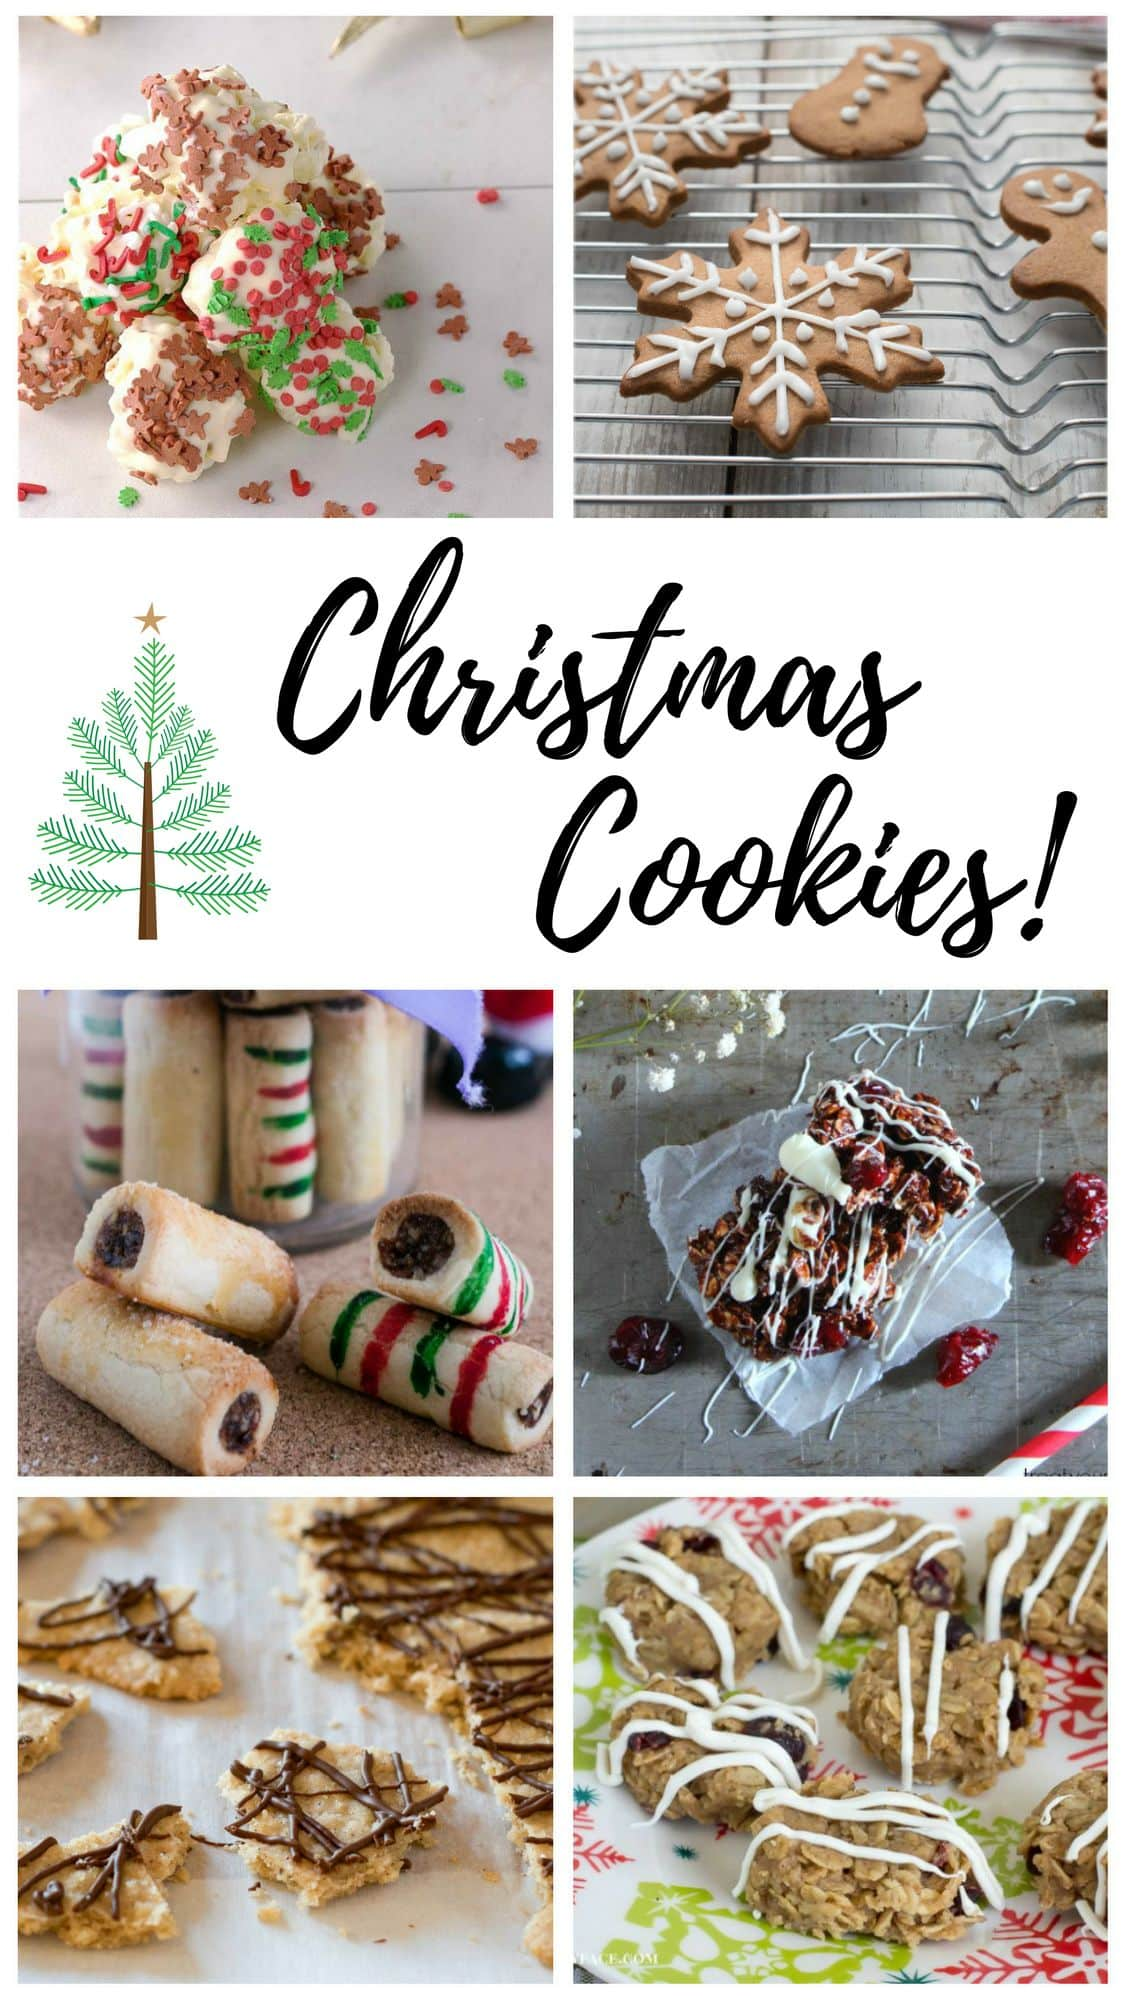 Christmas Cookie Recipe Roundup #FoodBlogGenius via flouronmyface.com